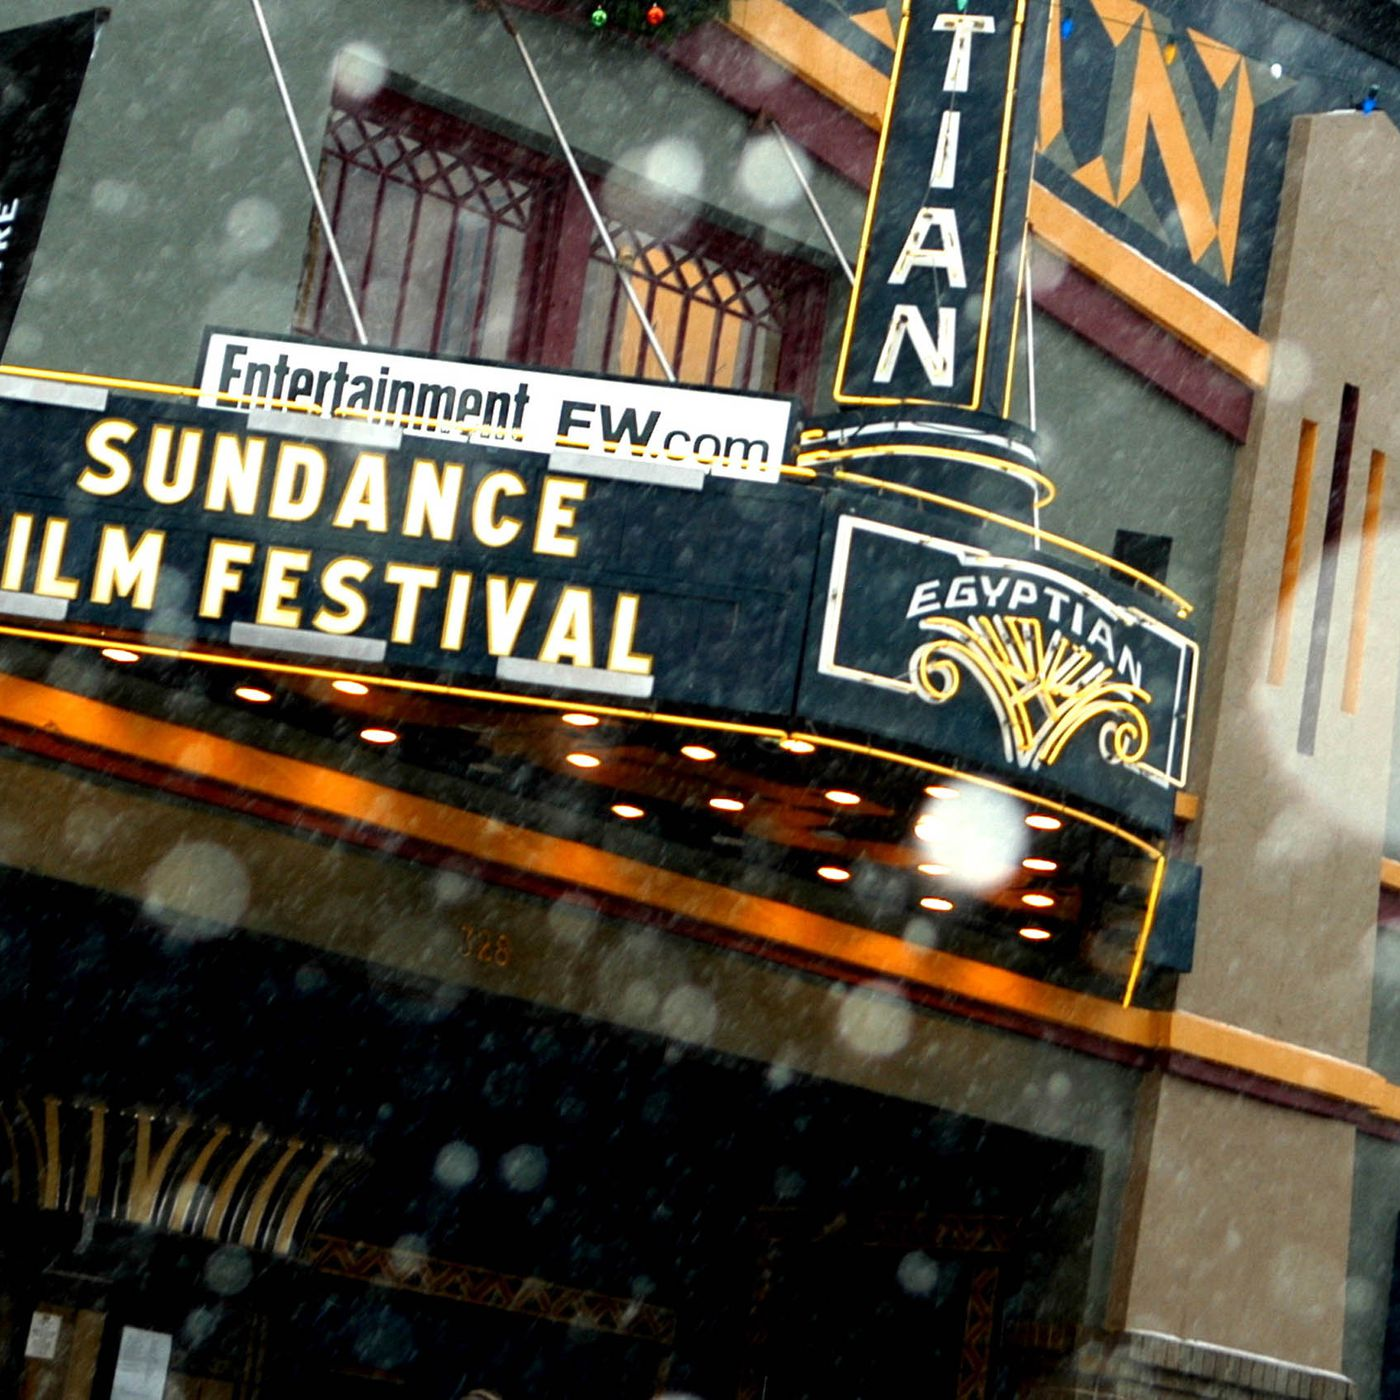 What is Sundance, and why does it matter? - Vox